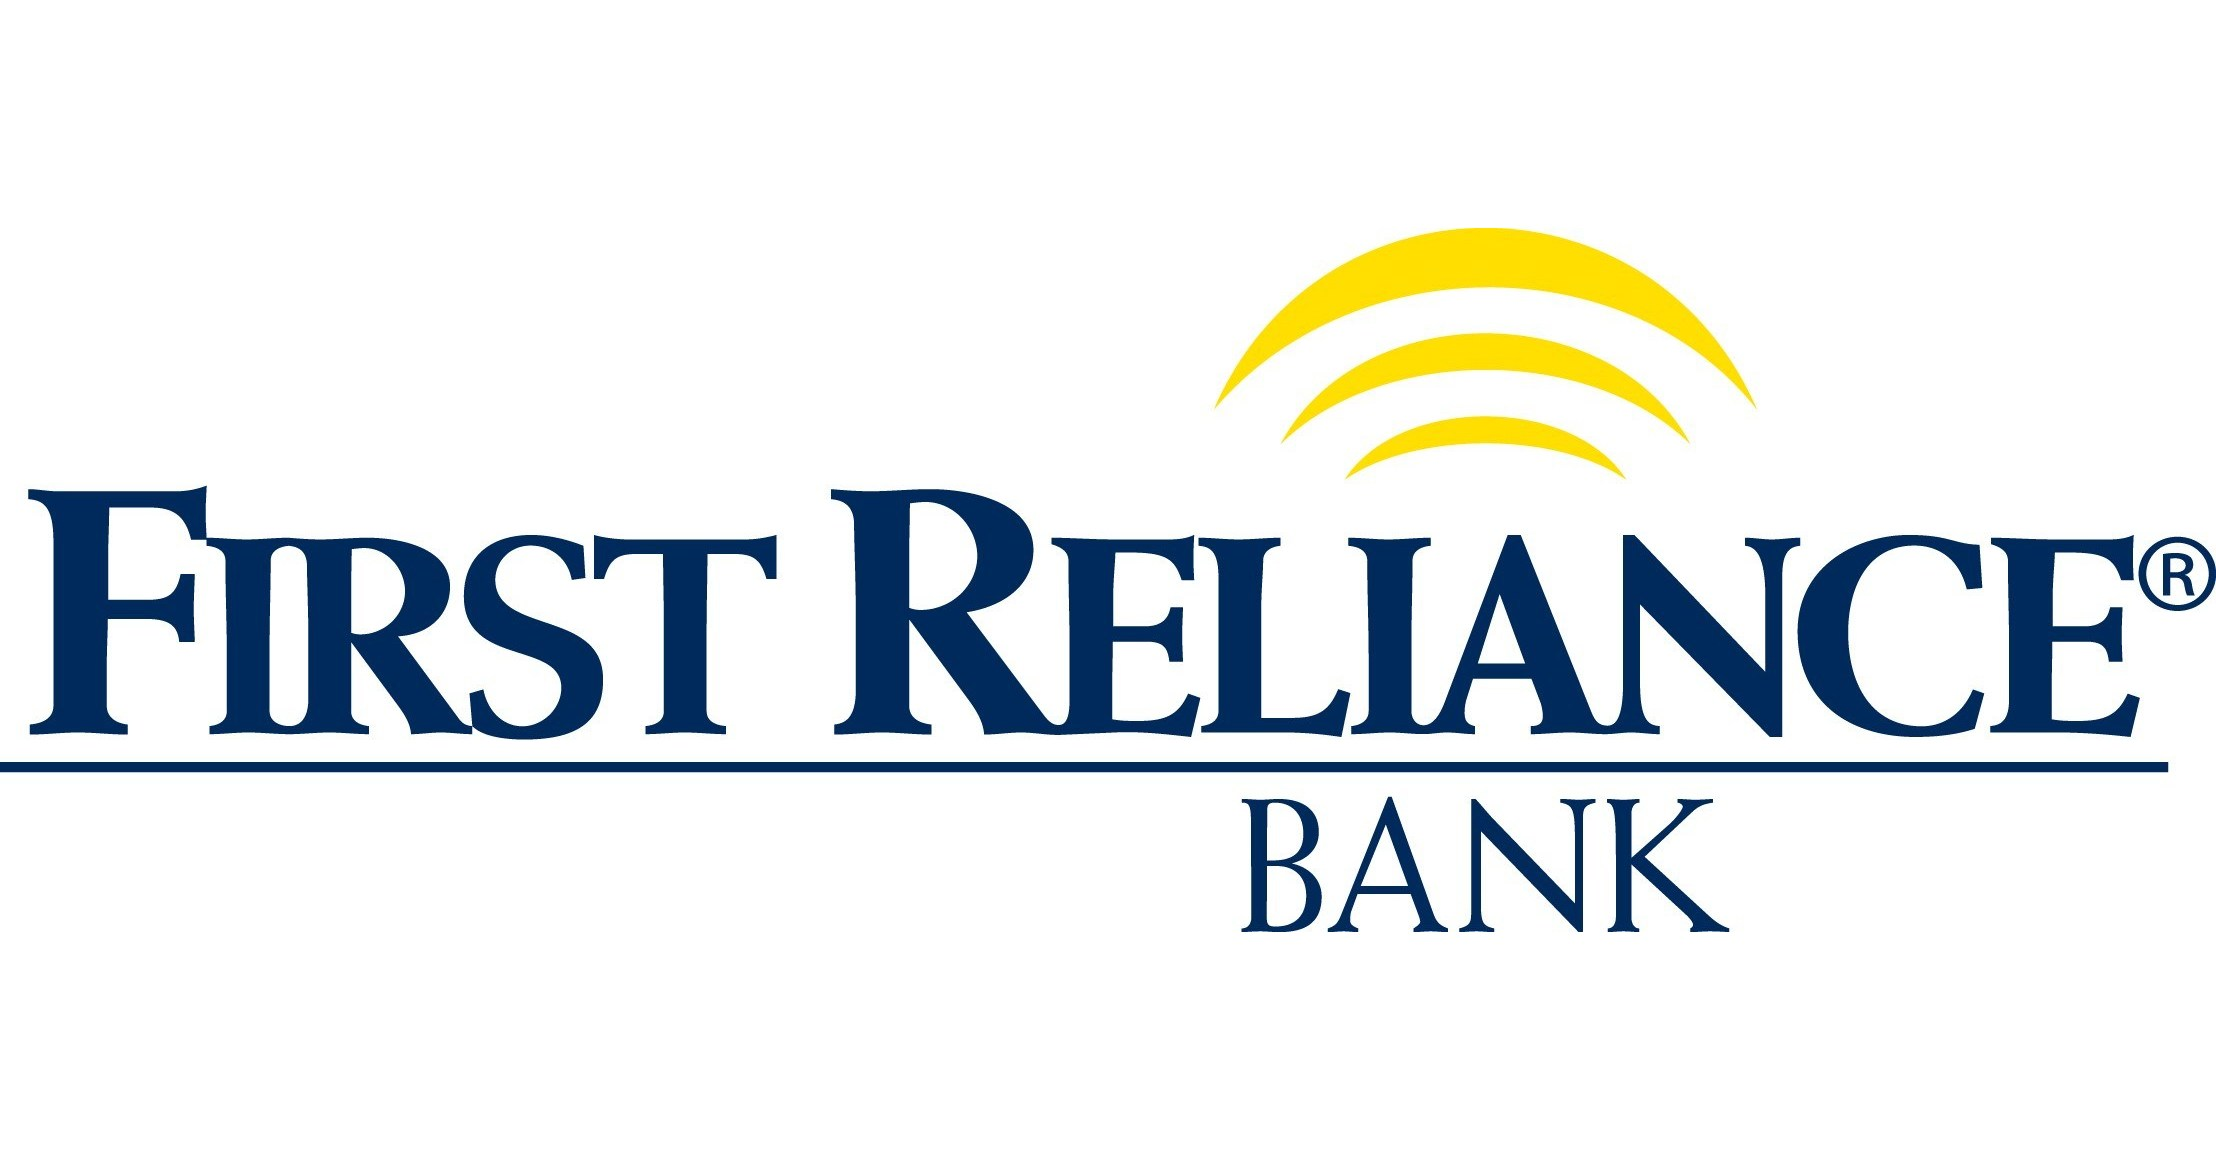 David Barksdale Joins First Reliance Bank As President Of